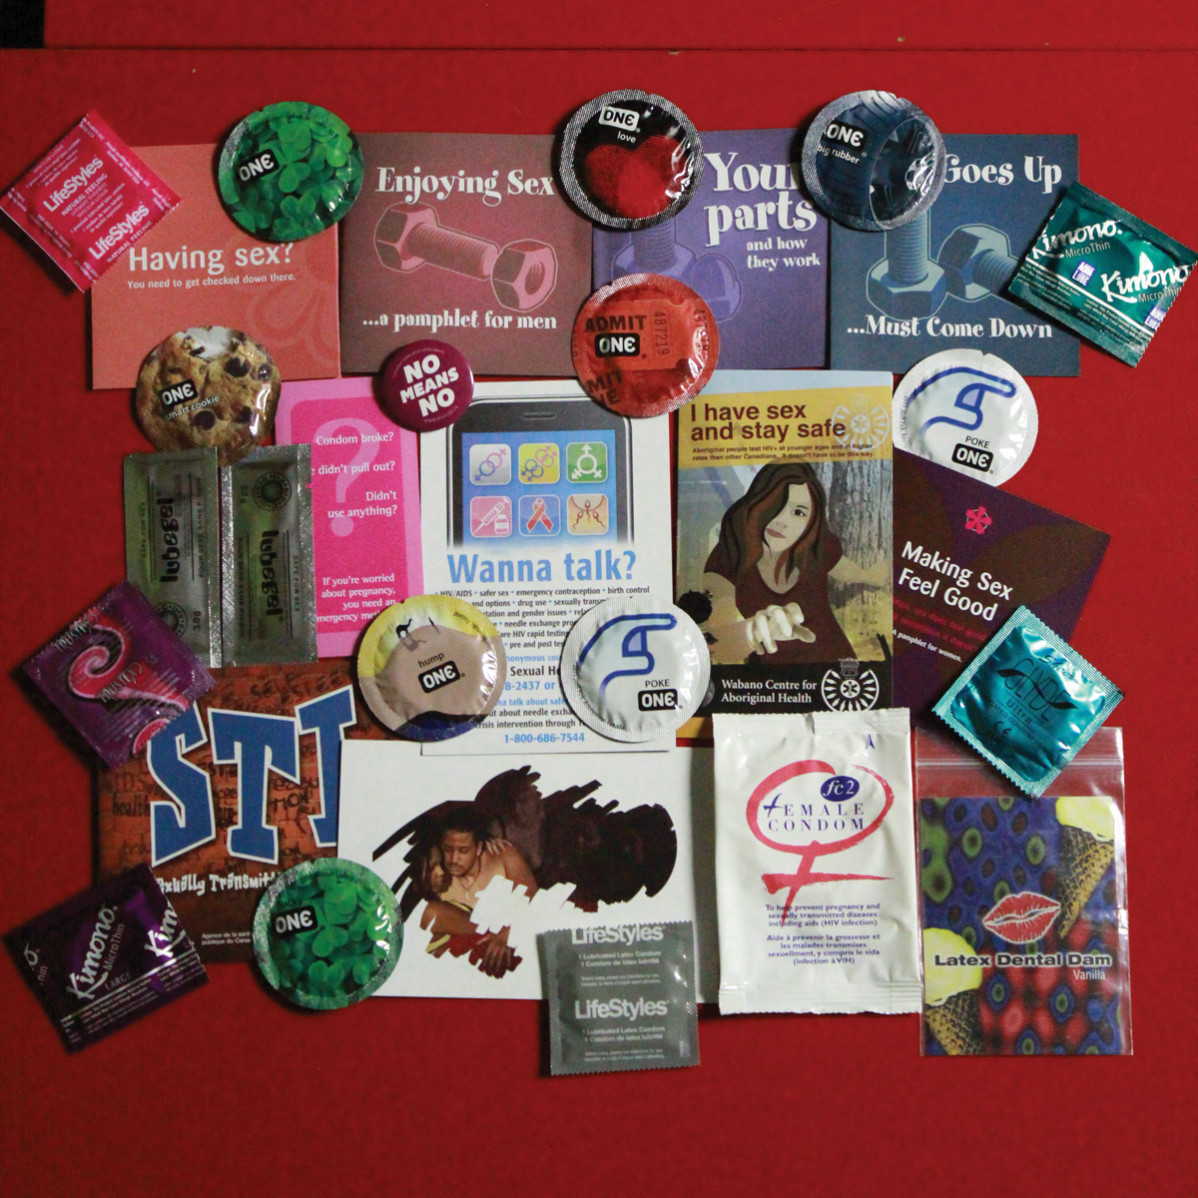 The community action centre is helping to promote safer sex Photo: Brittany Barber/The Dialog